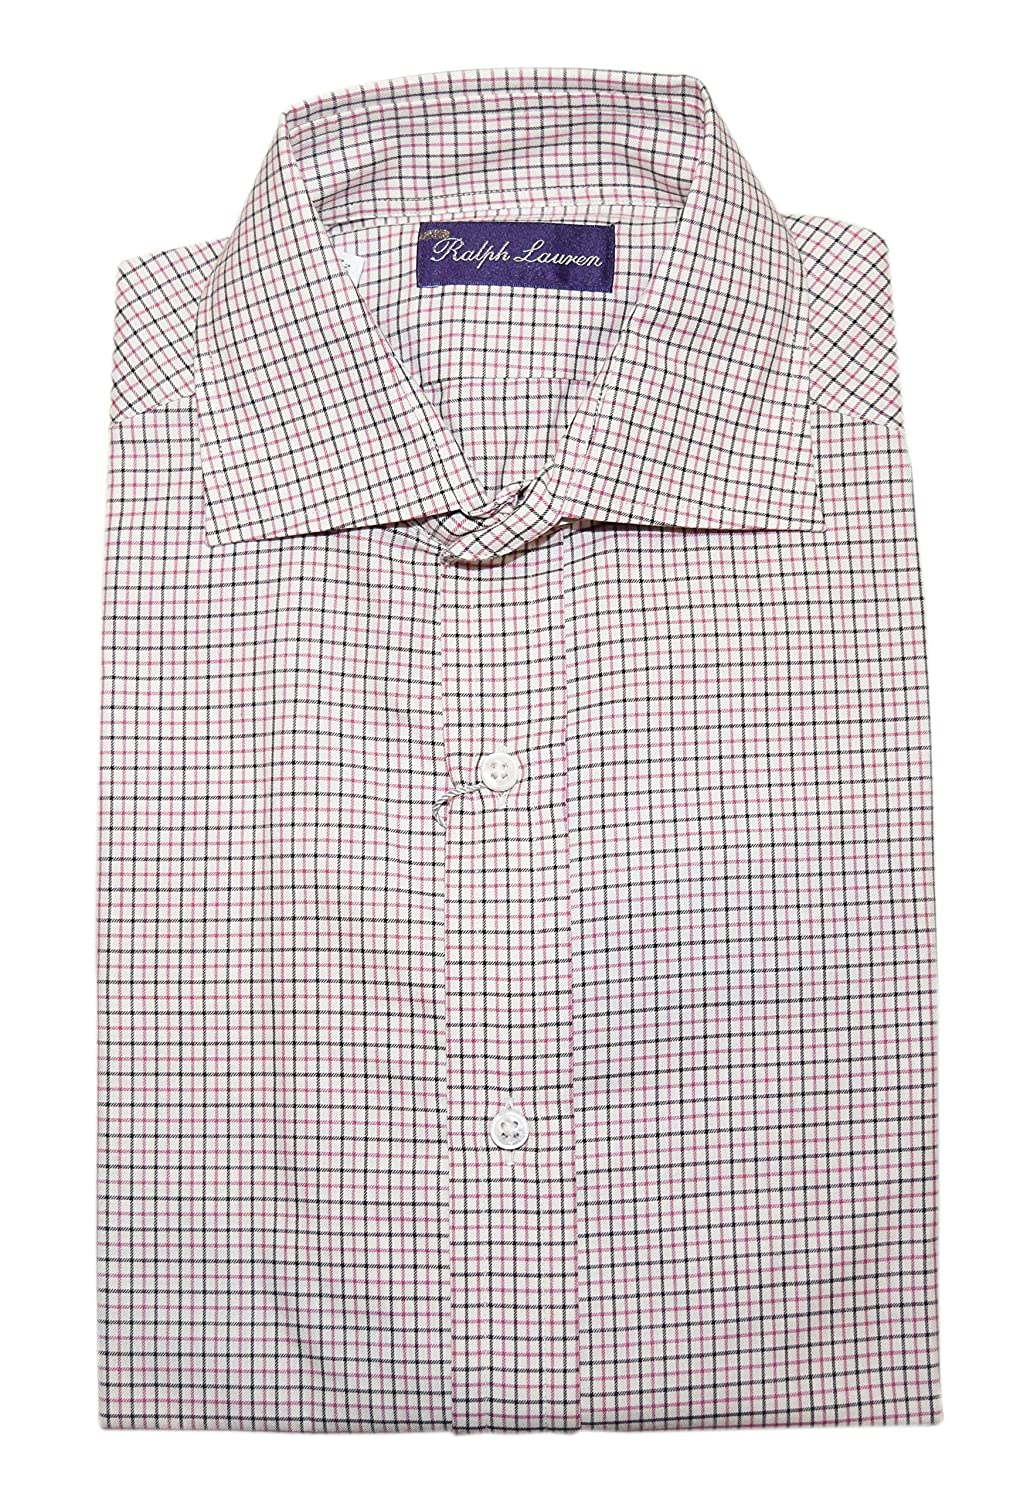 6e319e21 Ralph Lauren Polo Purple Label Mens White Pink Black Plaid Dress ...